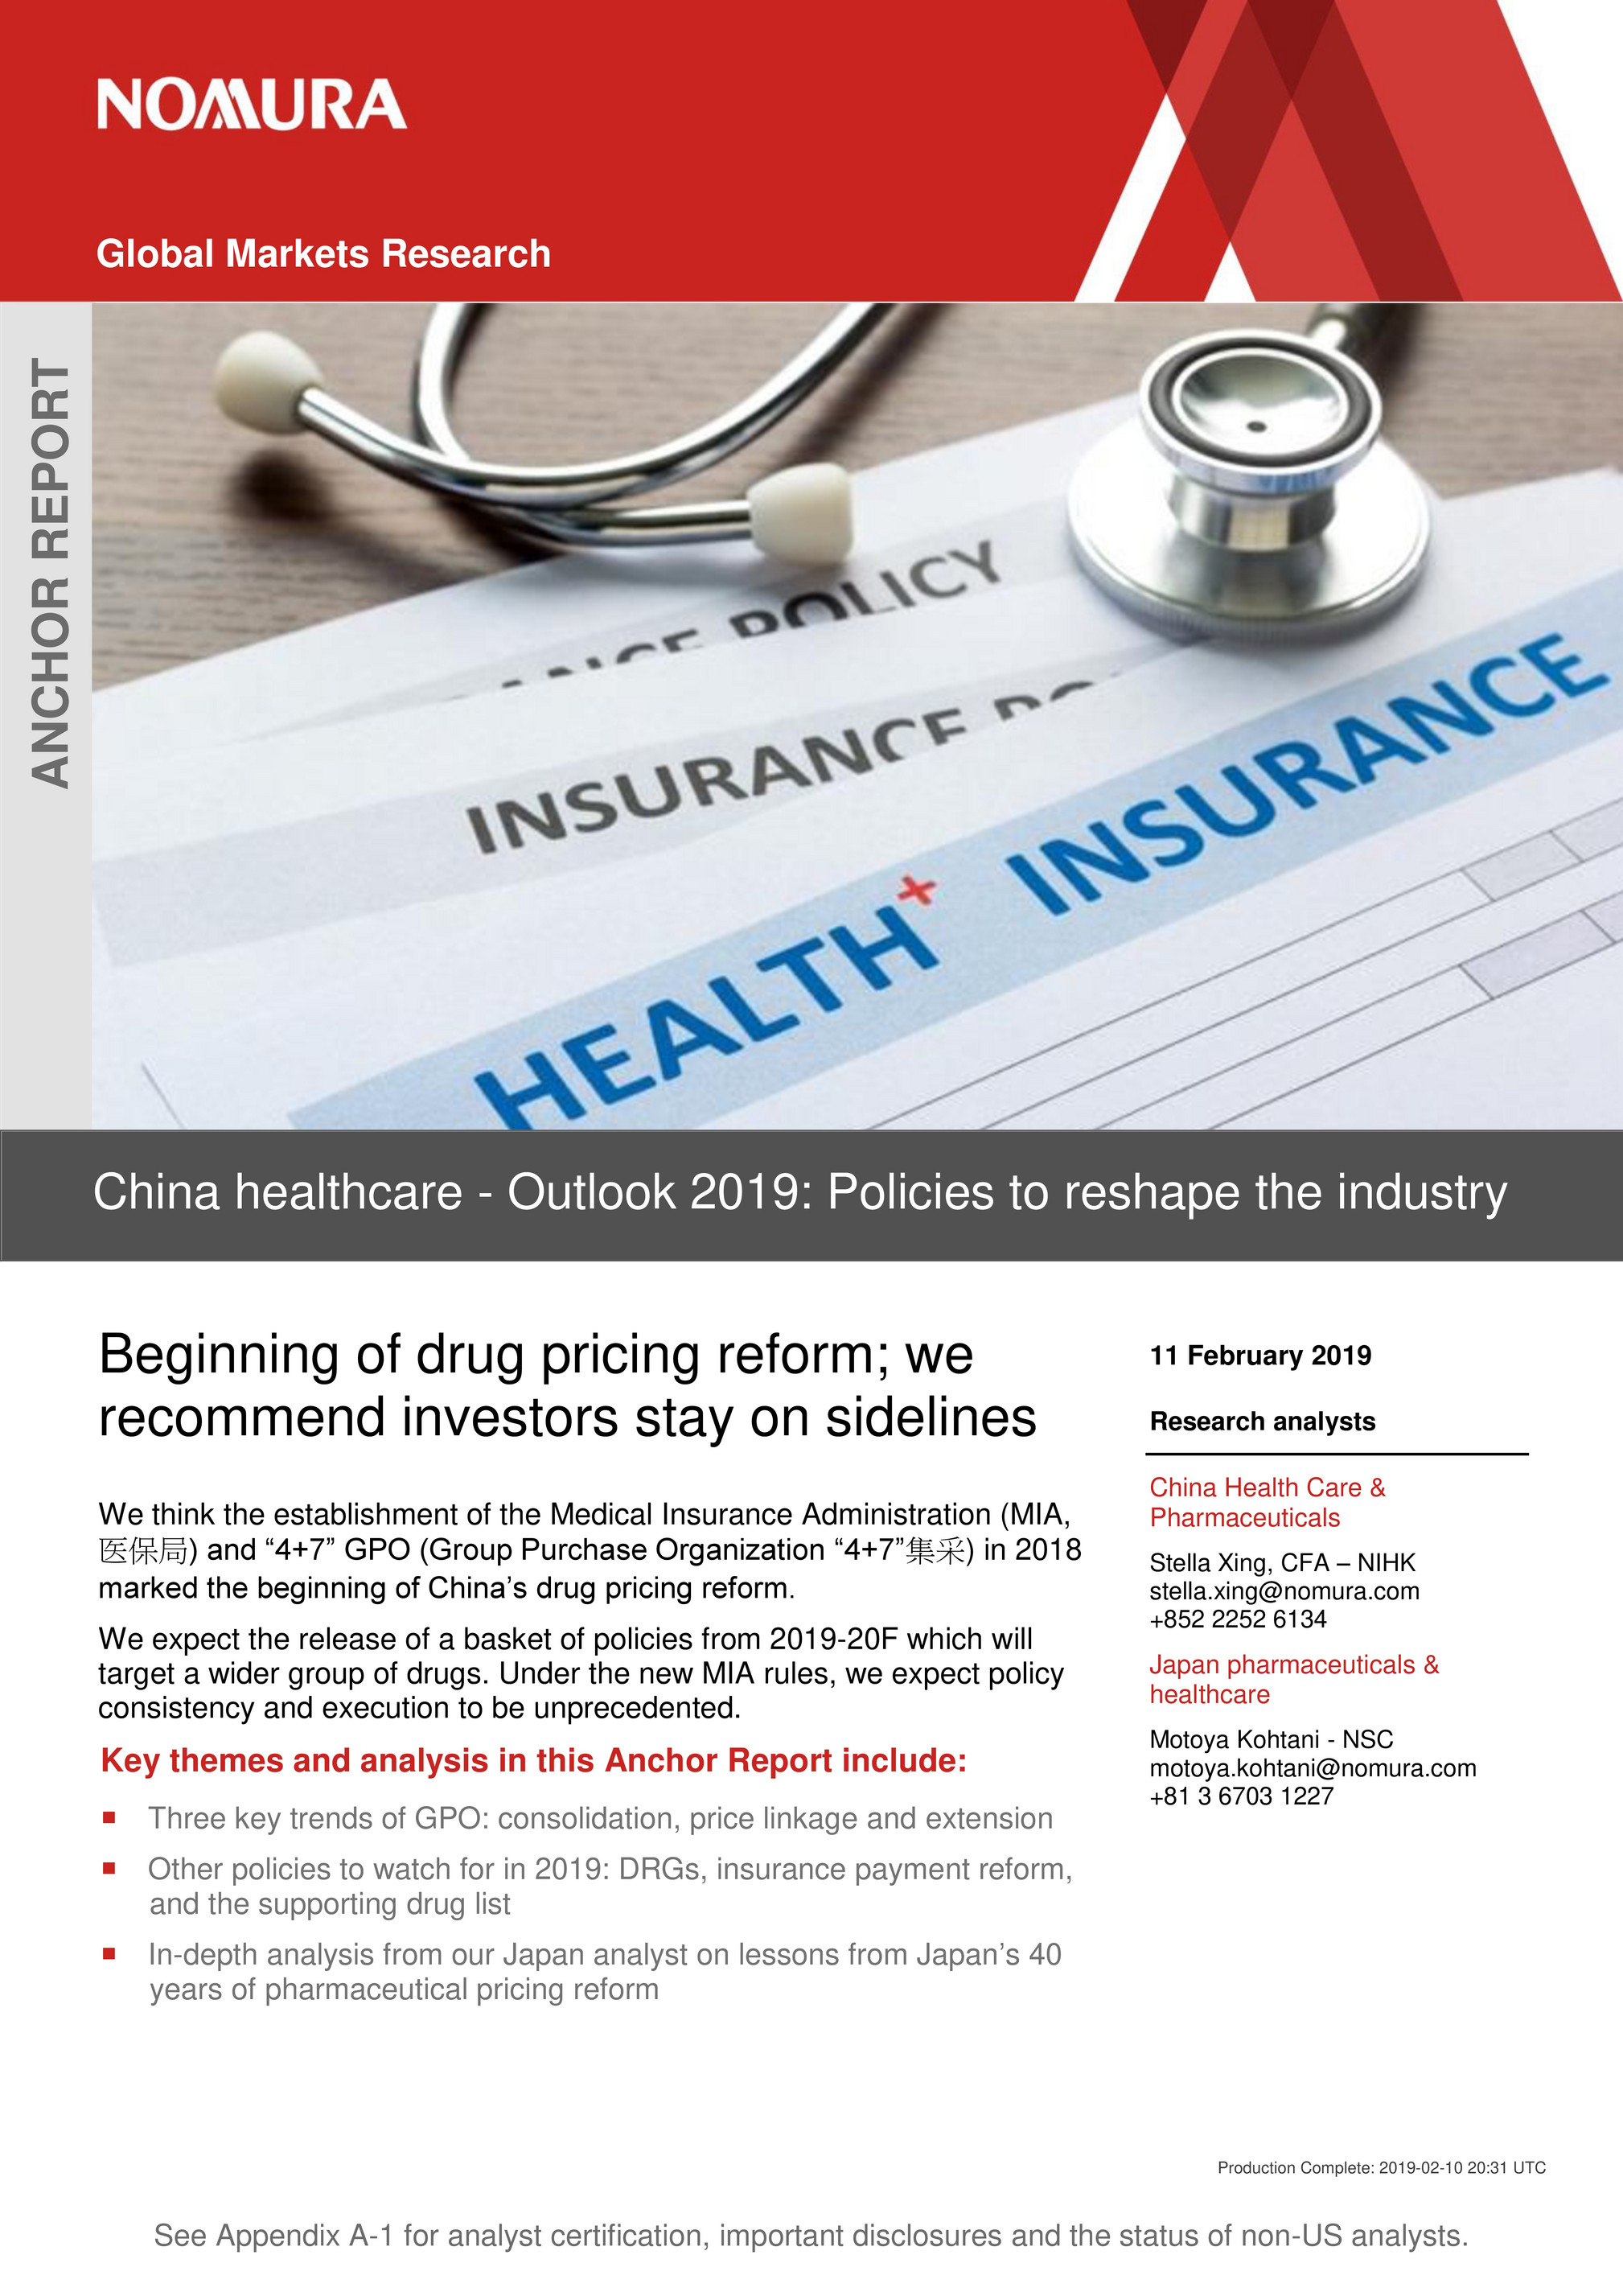 Ierp Nomura Anchor Report China Healthcare Page 6 7 Created With Publitas Com